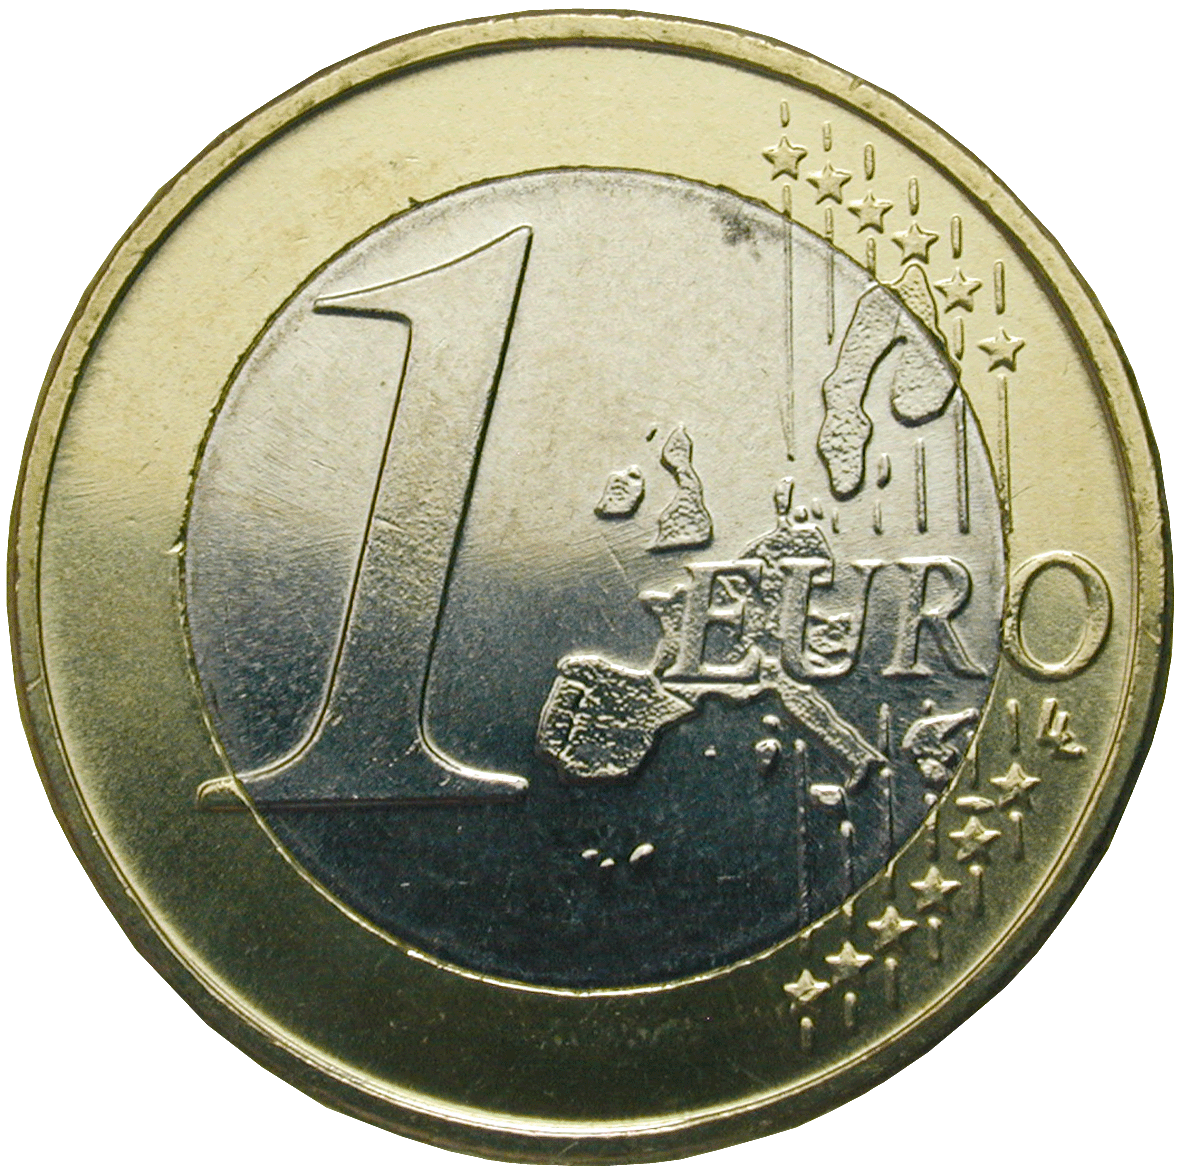 Republic of Greece, 1 Euro 2002 (reverse)